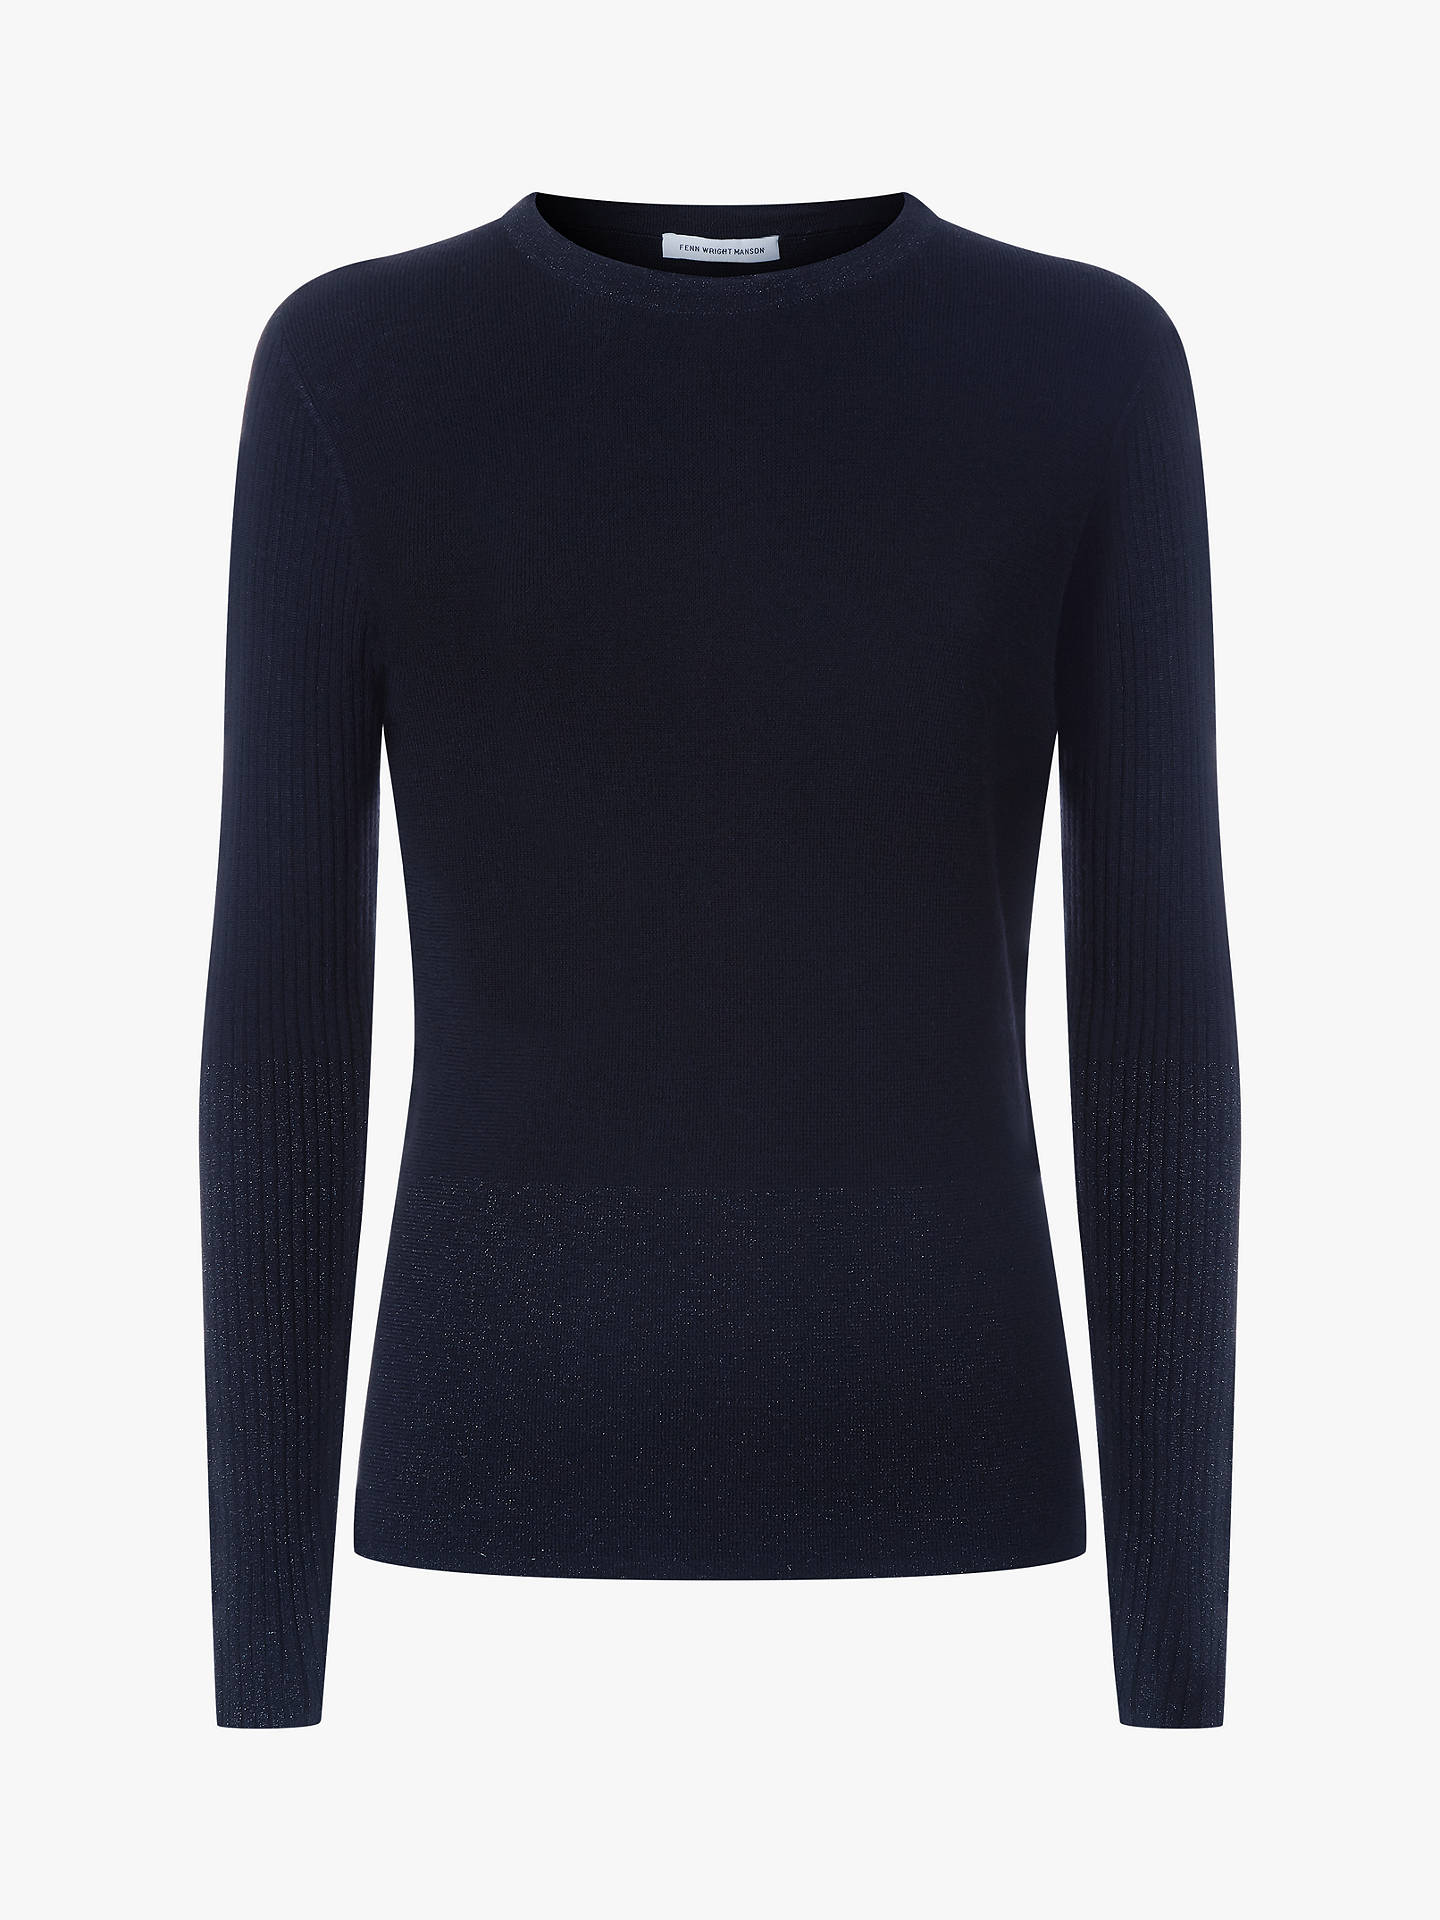 Buy Fenn Wright Manson Ribbed Sleeve Martina Jumper, Navy, XS Online at johnlewis.com